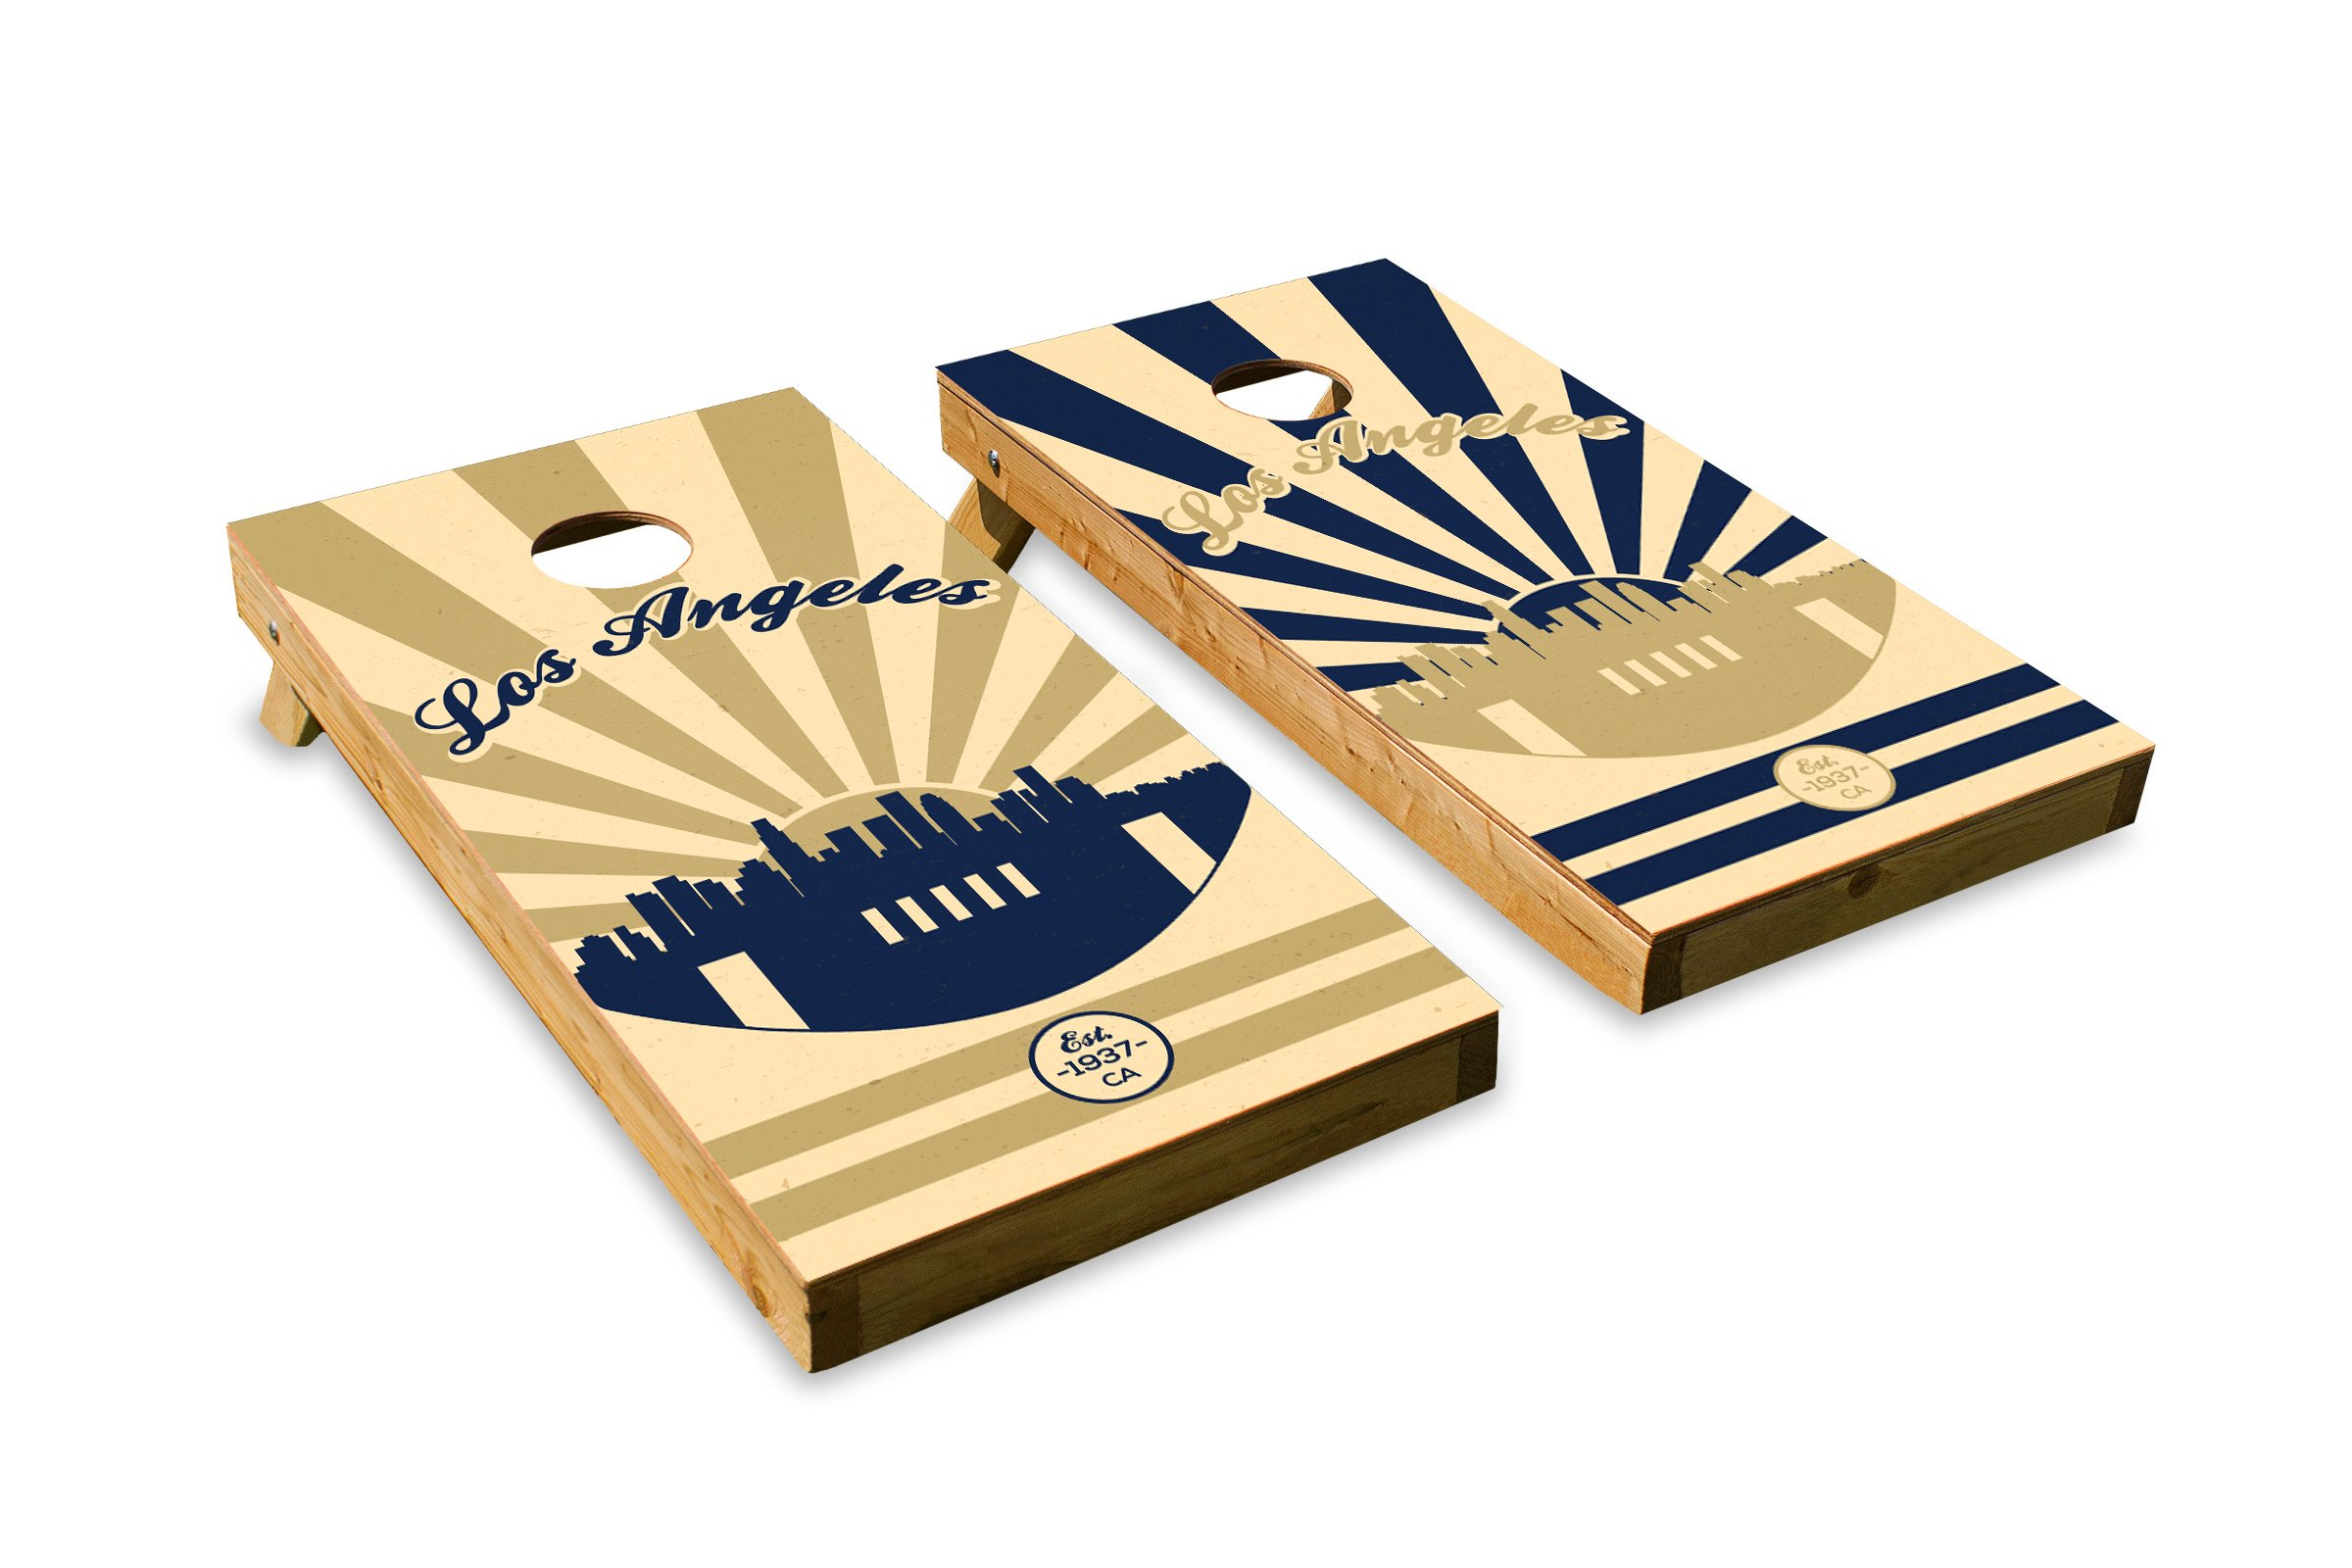 Los Angeles Football - Cornhole Crew - ACA Regulation Size Cornhole Board Set